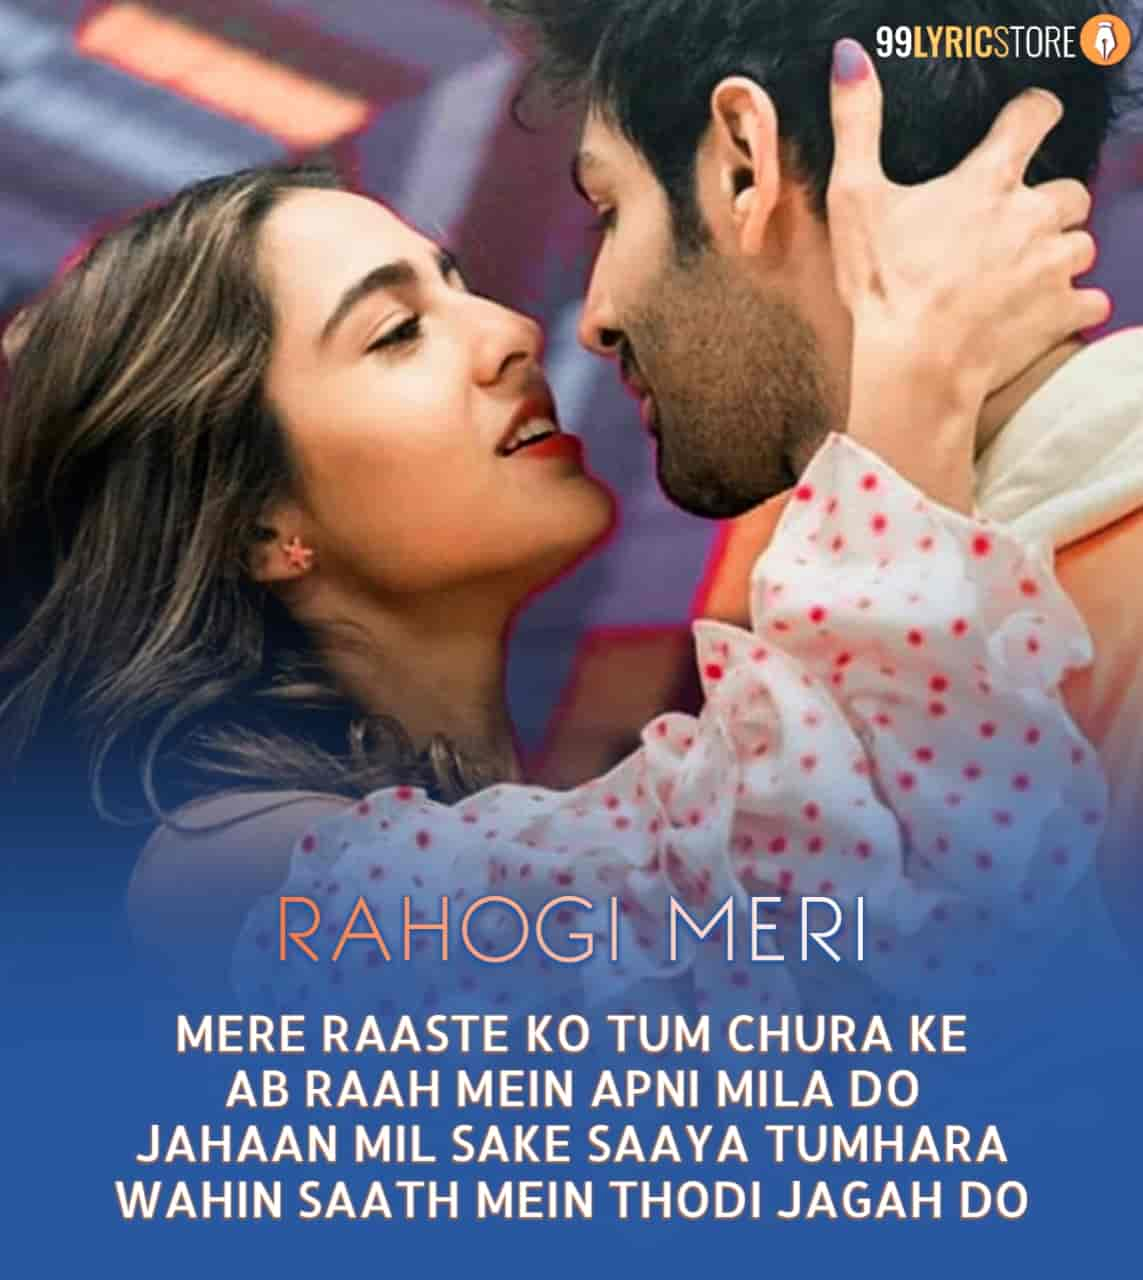 Tum To Rahogi Meri Lyrics :- The Arijit Singh given his voice in melodious sad hindi song which is titled Rahogi Meri from Kartik Aaryan and Sara Ali starrer movie Love Aaj Kal. Music of this song given by Pritam Da while this beautiful song Rahogi Meri lyrics has written by Irshad Kamil. This song is presented by Sony Music India label.